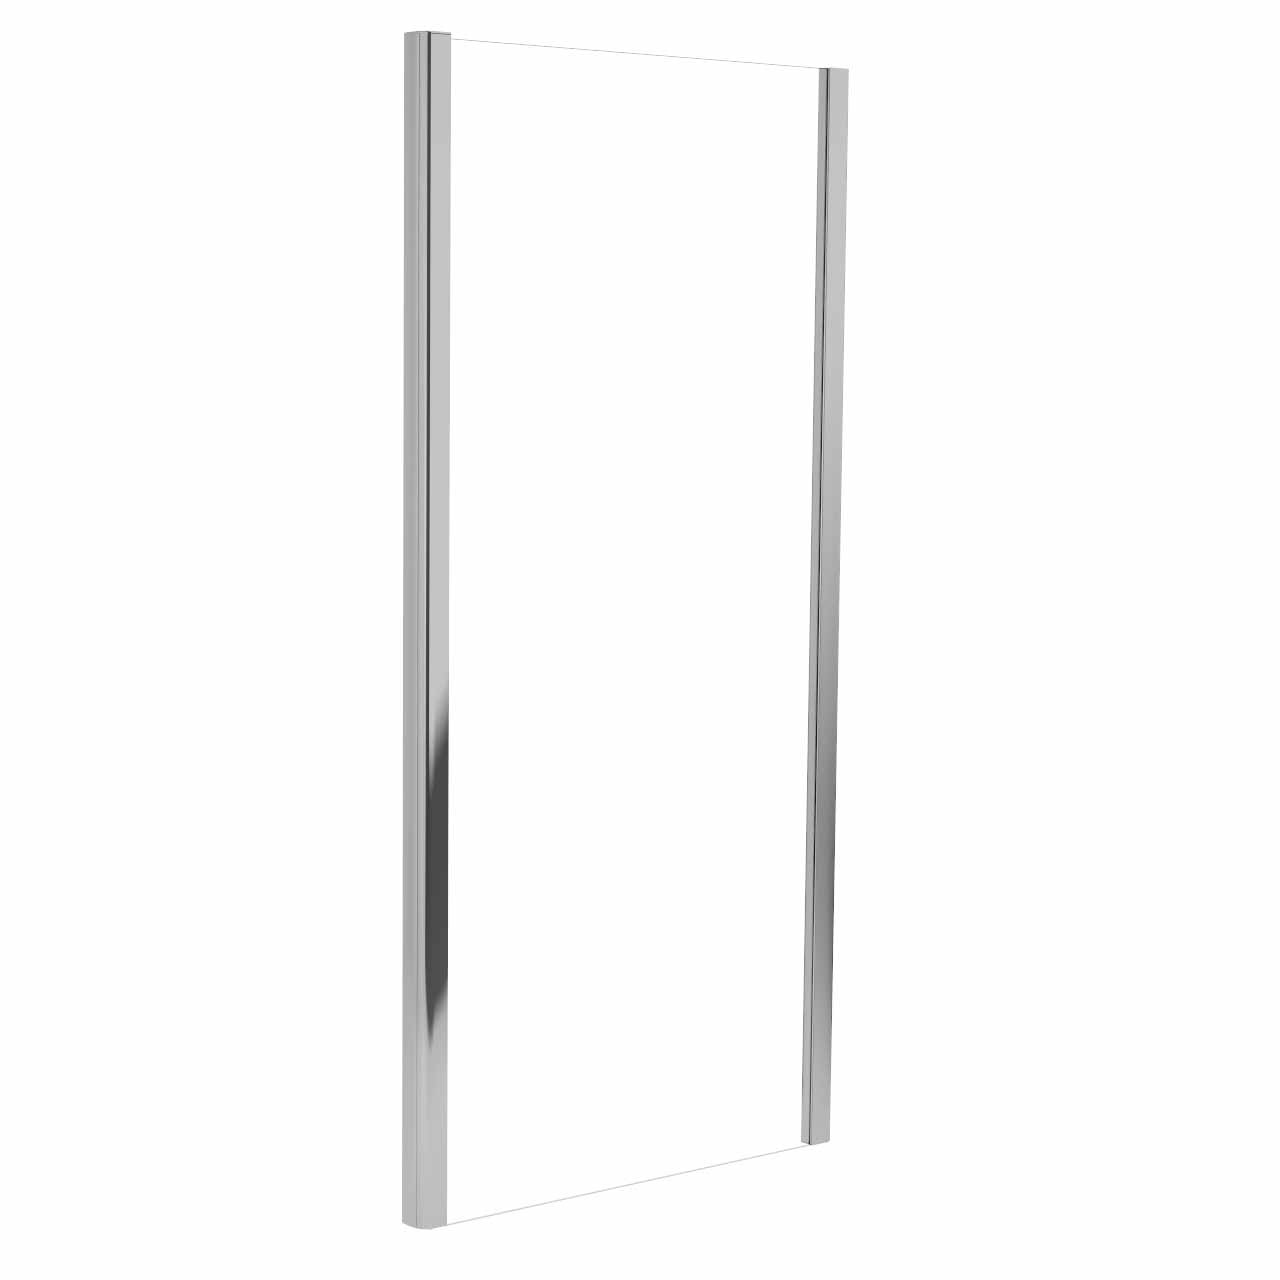 Series 8 Plus 800 x 900 Hinged Door Enclosure